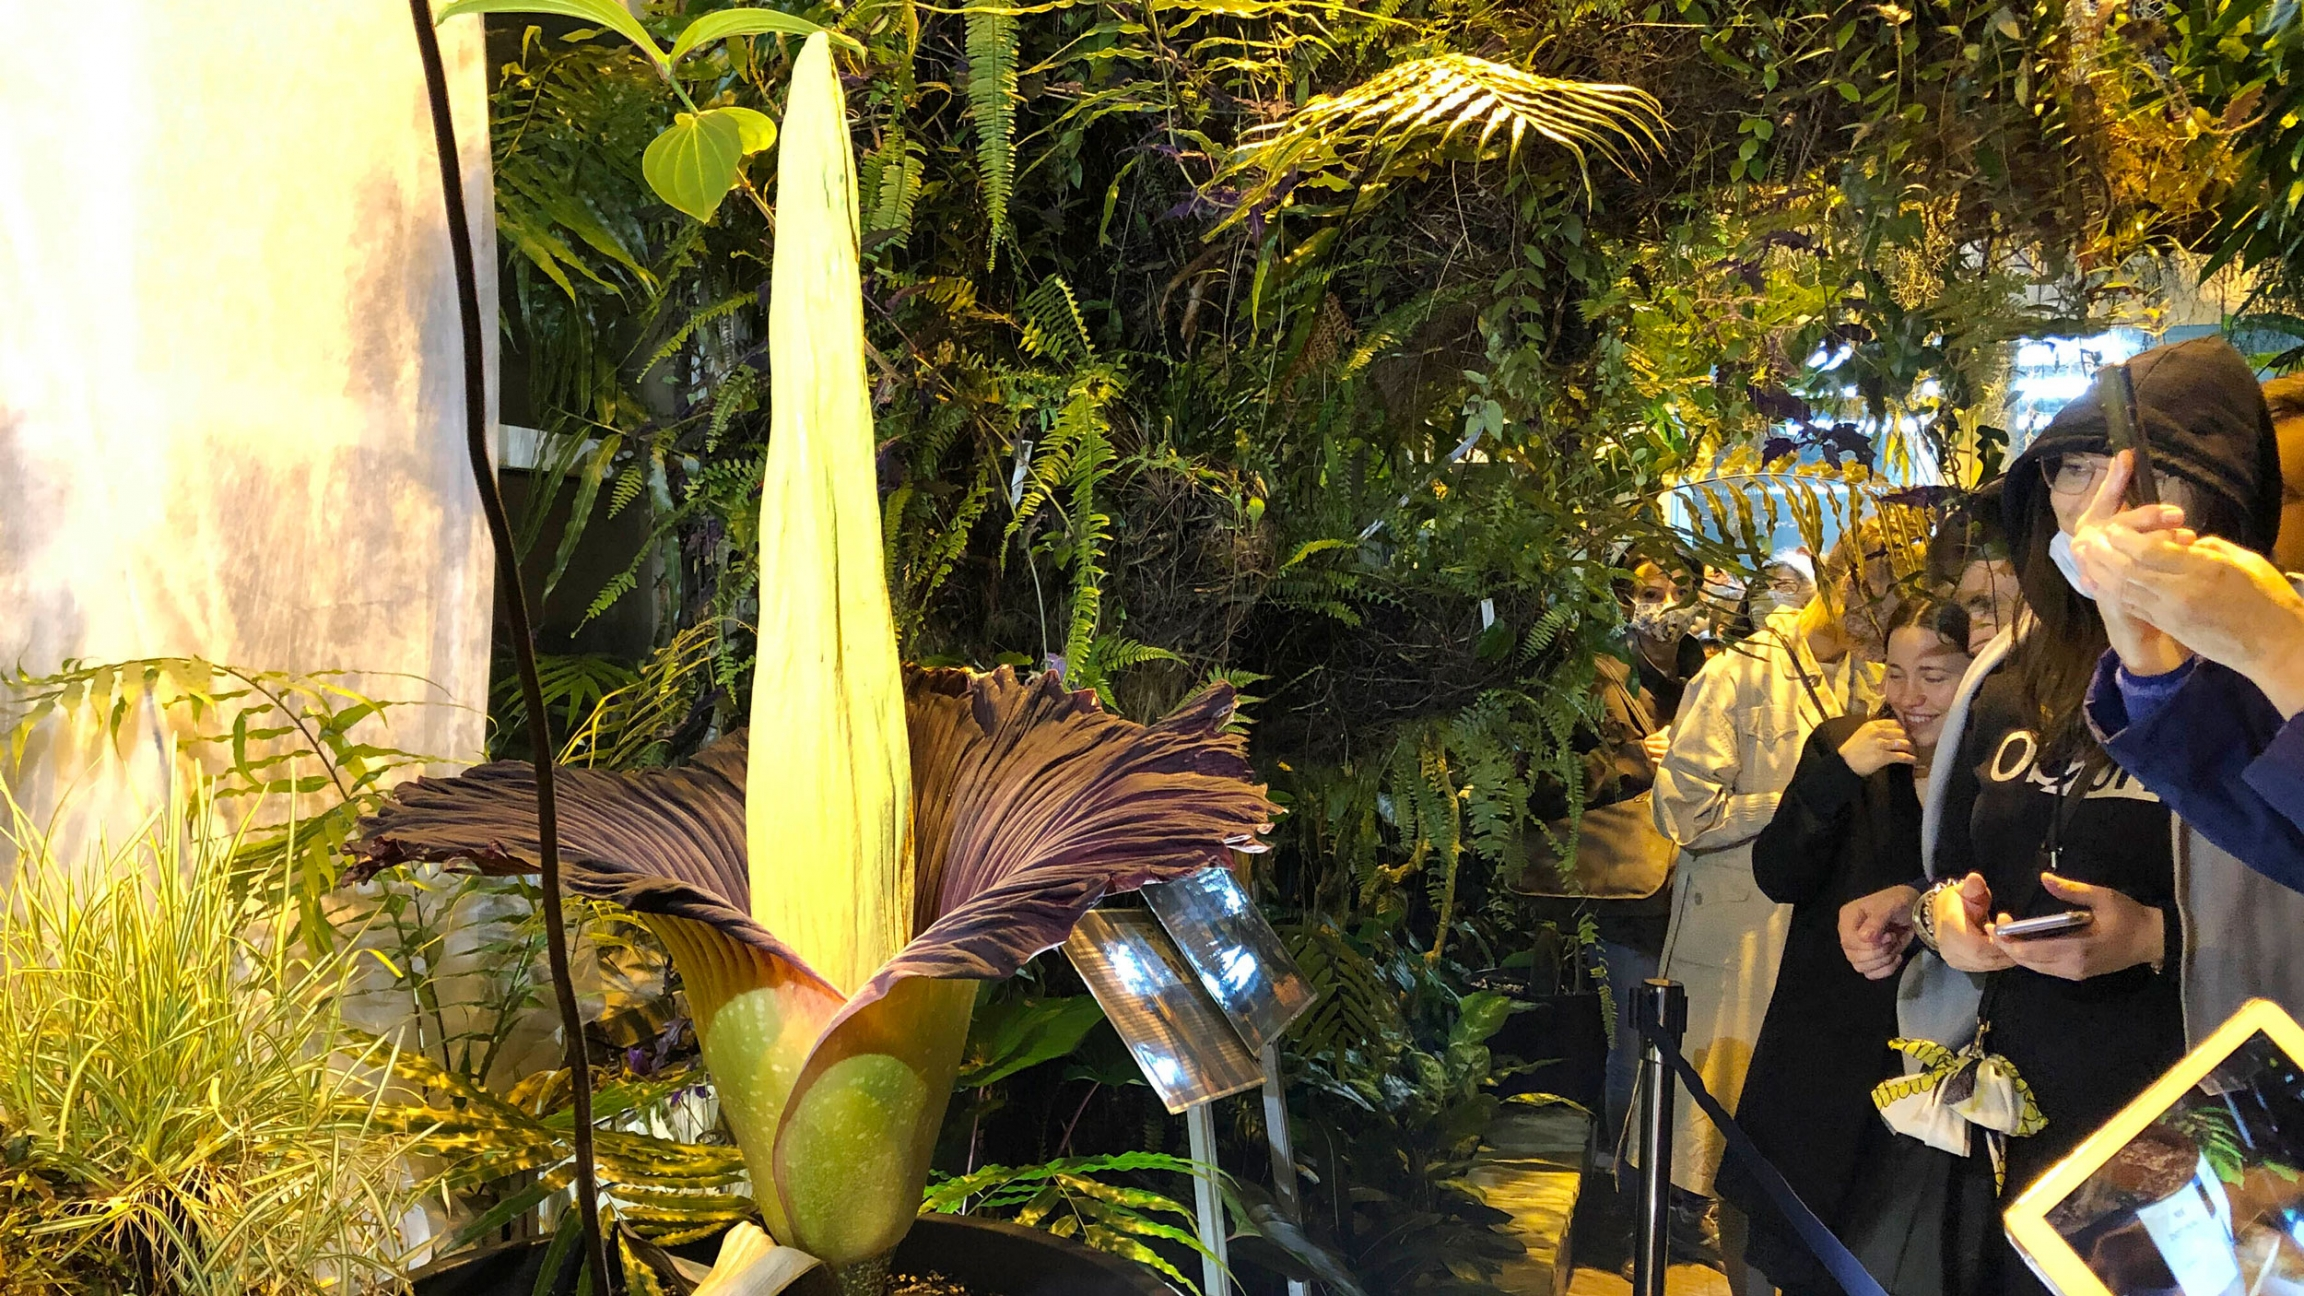 Several people are shown off to the side looking at the tall, yellow blooming of the Sumatran Titan arum flower.